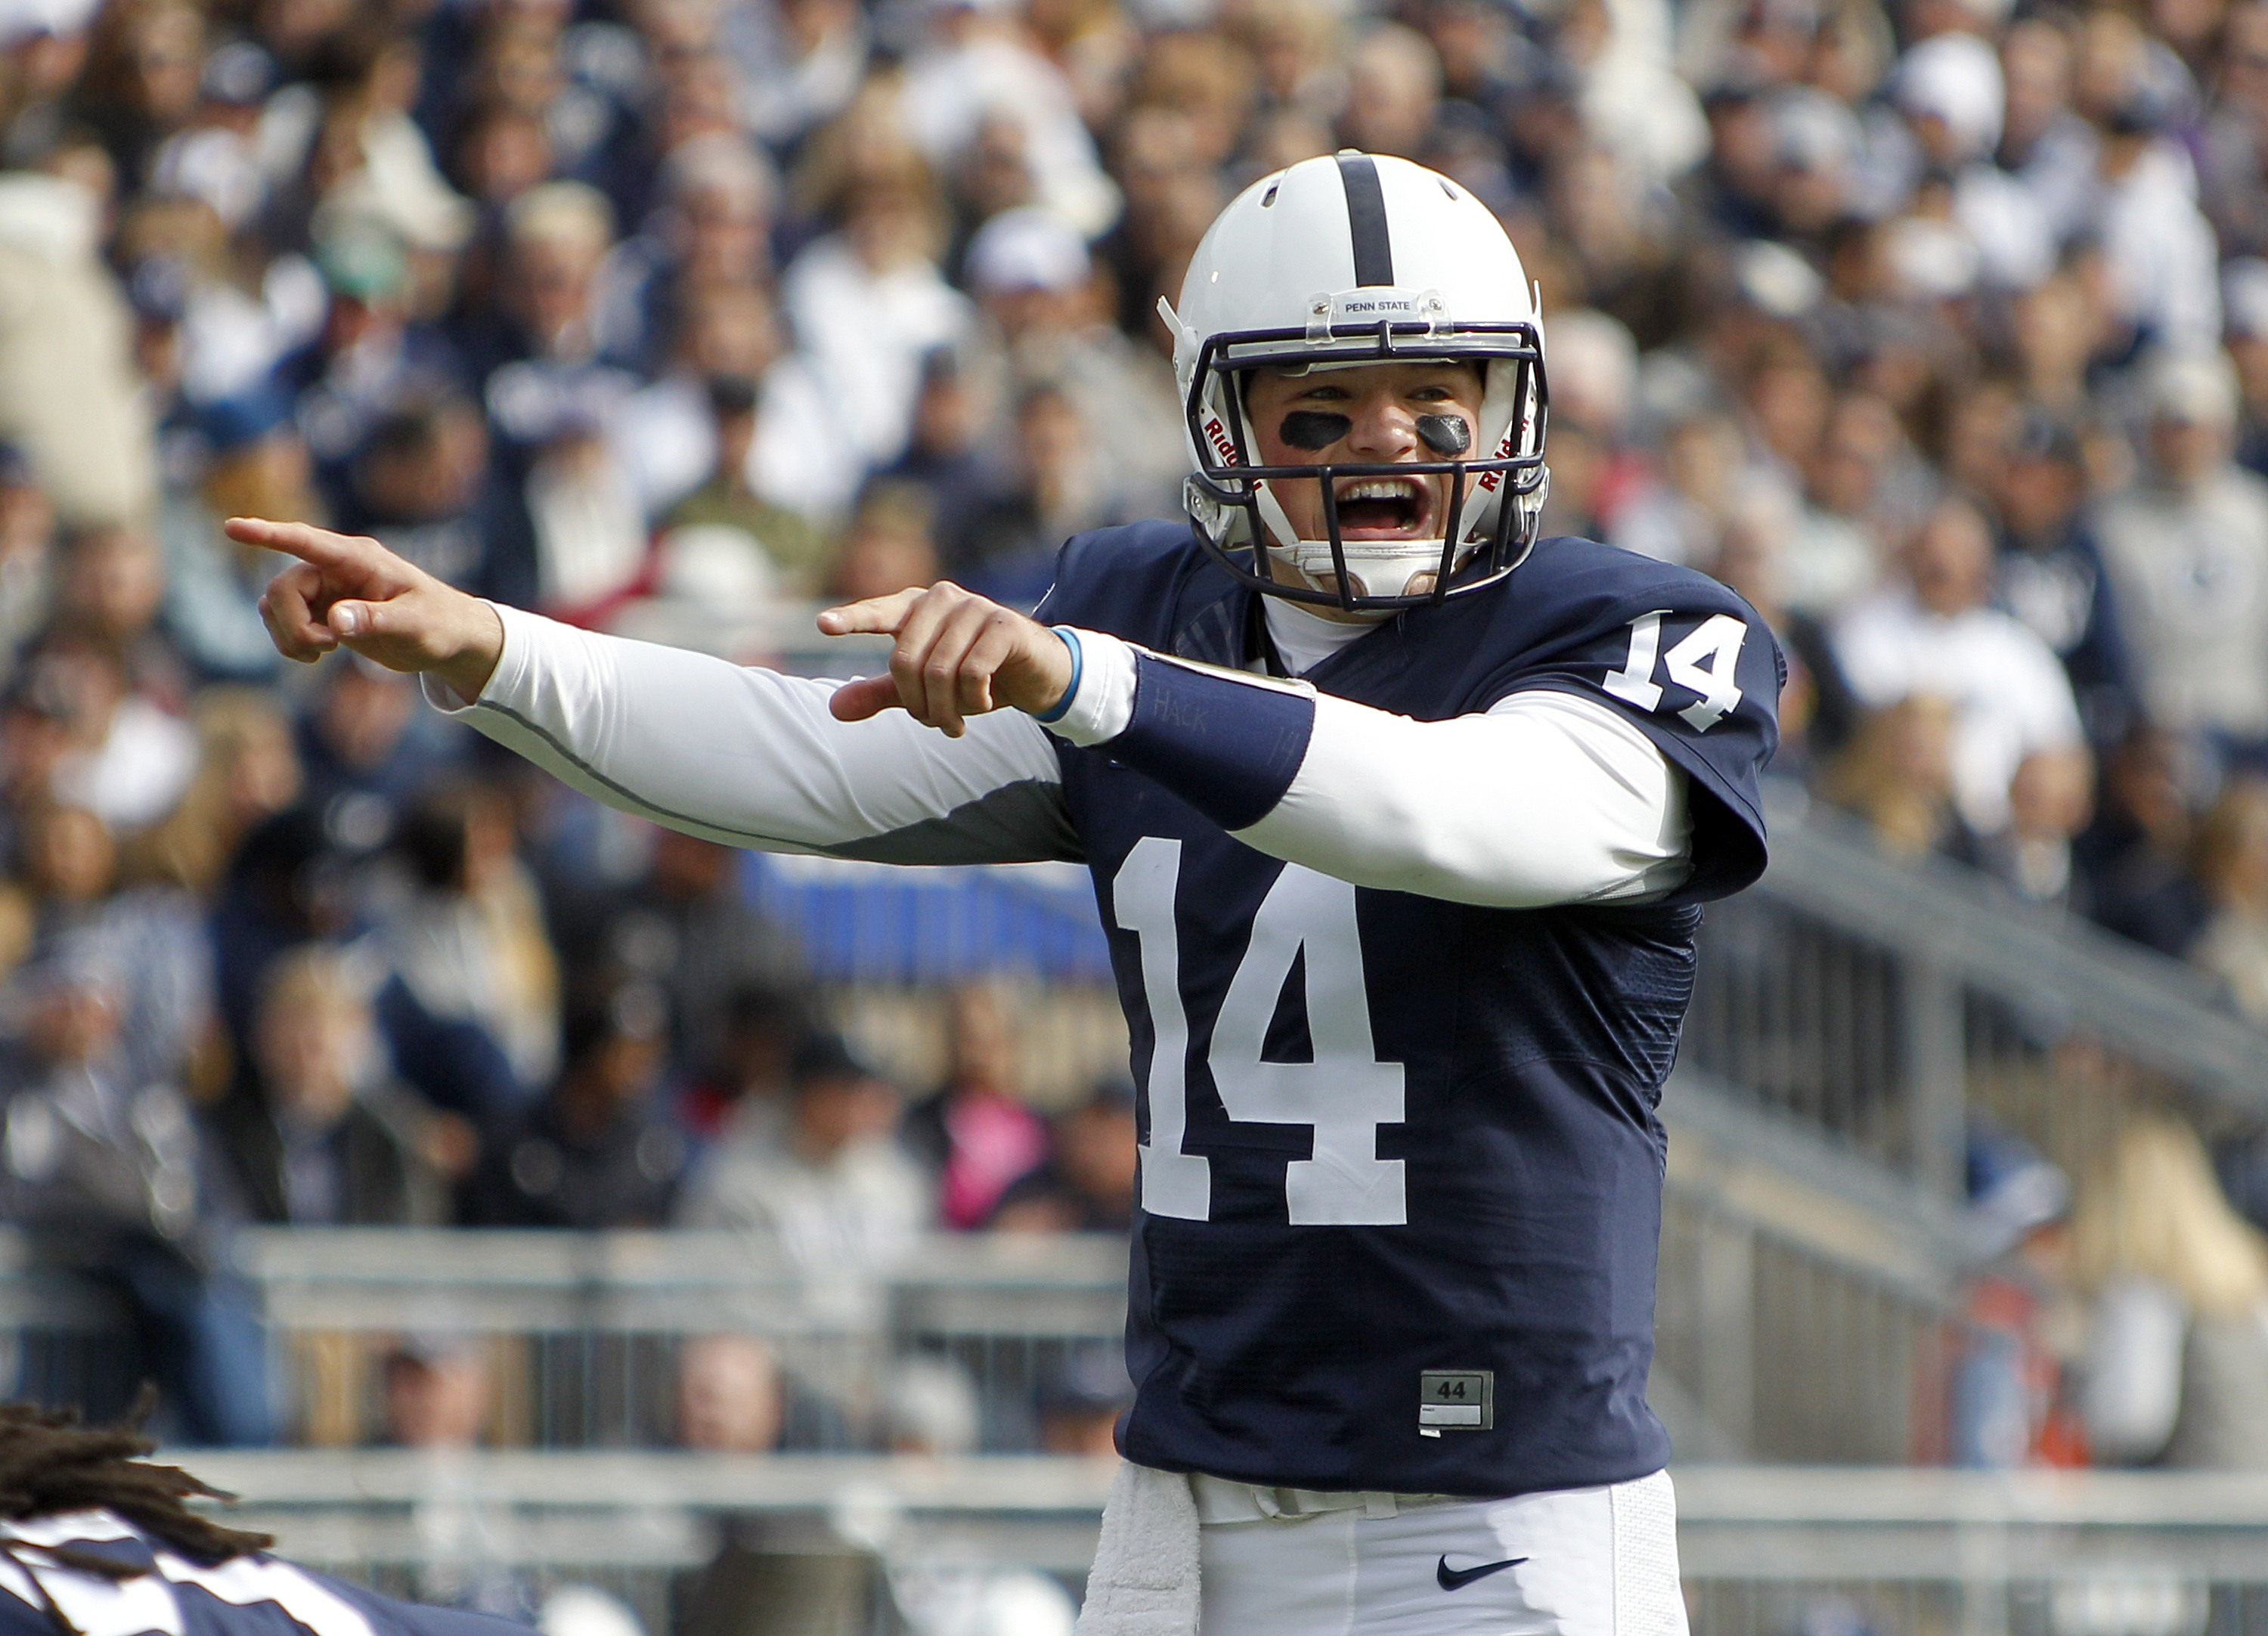 Christian Hackenberg of the Penn State Nittany Lions on Oct. 31, 2015 at Beaver Stadium in State College, Pennsylvania. (Photo by Justin K. Aller/Getty Images)